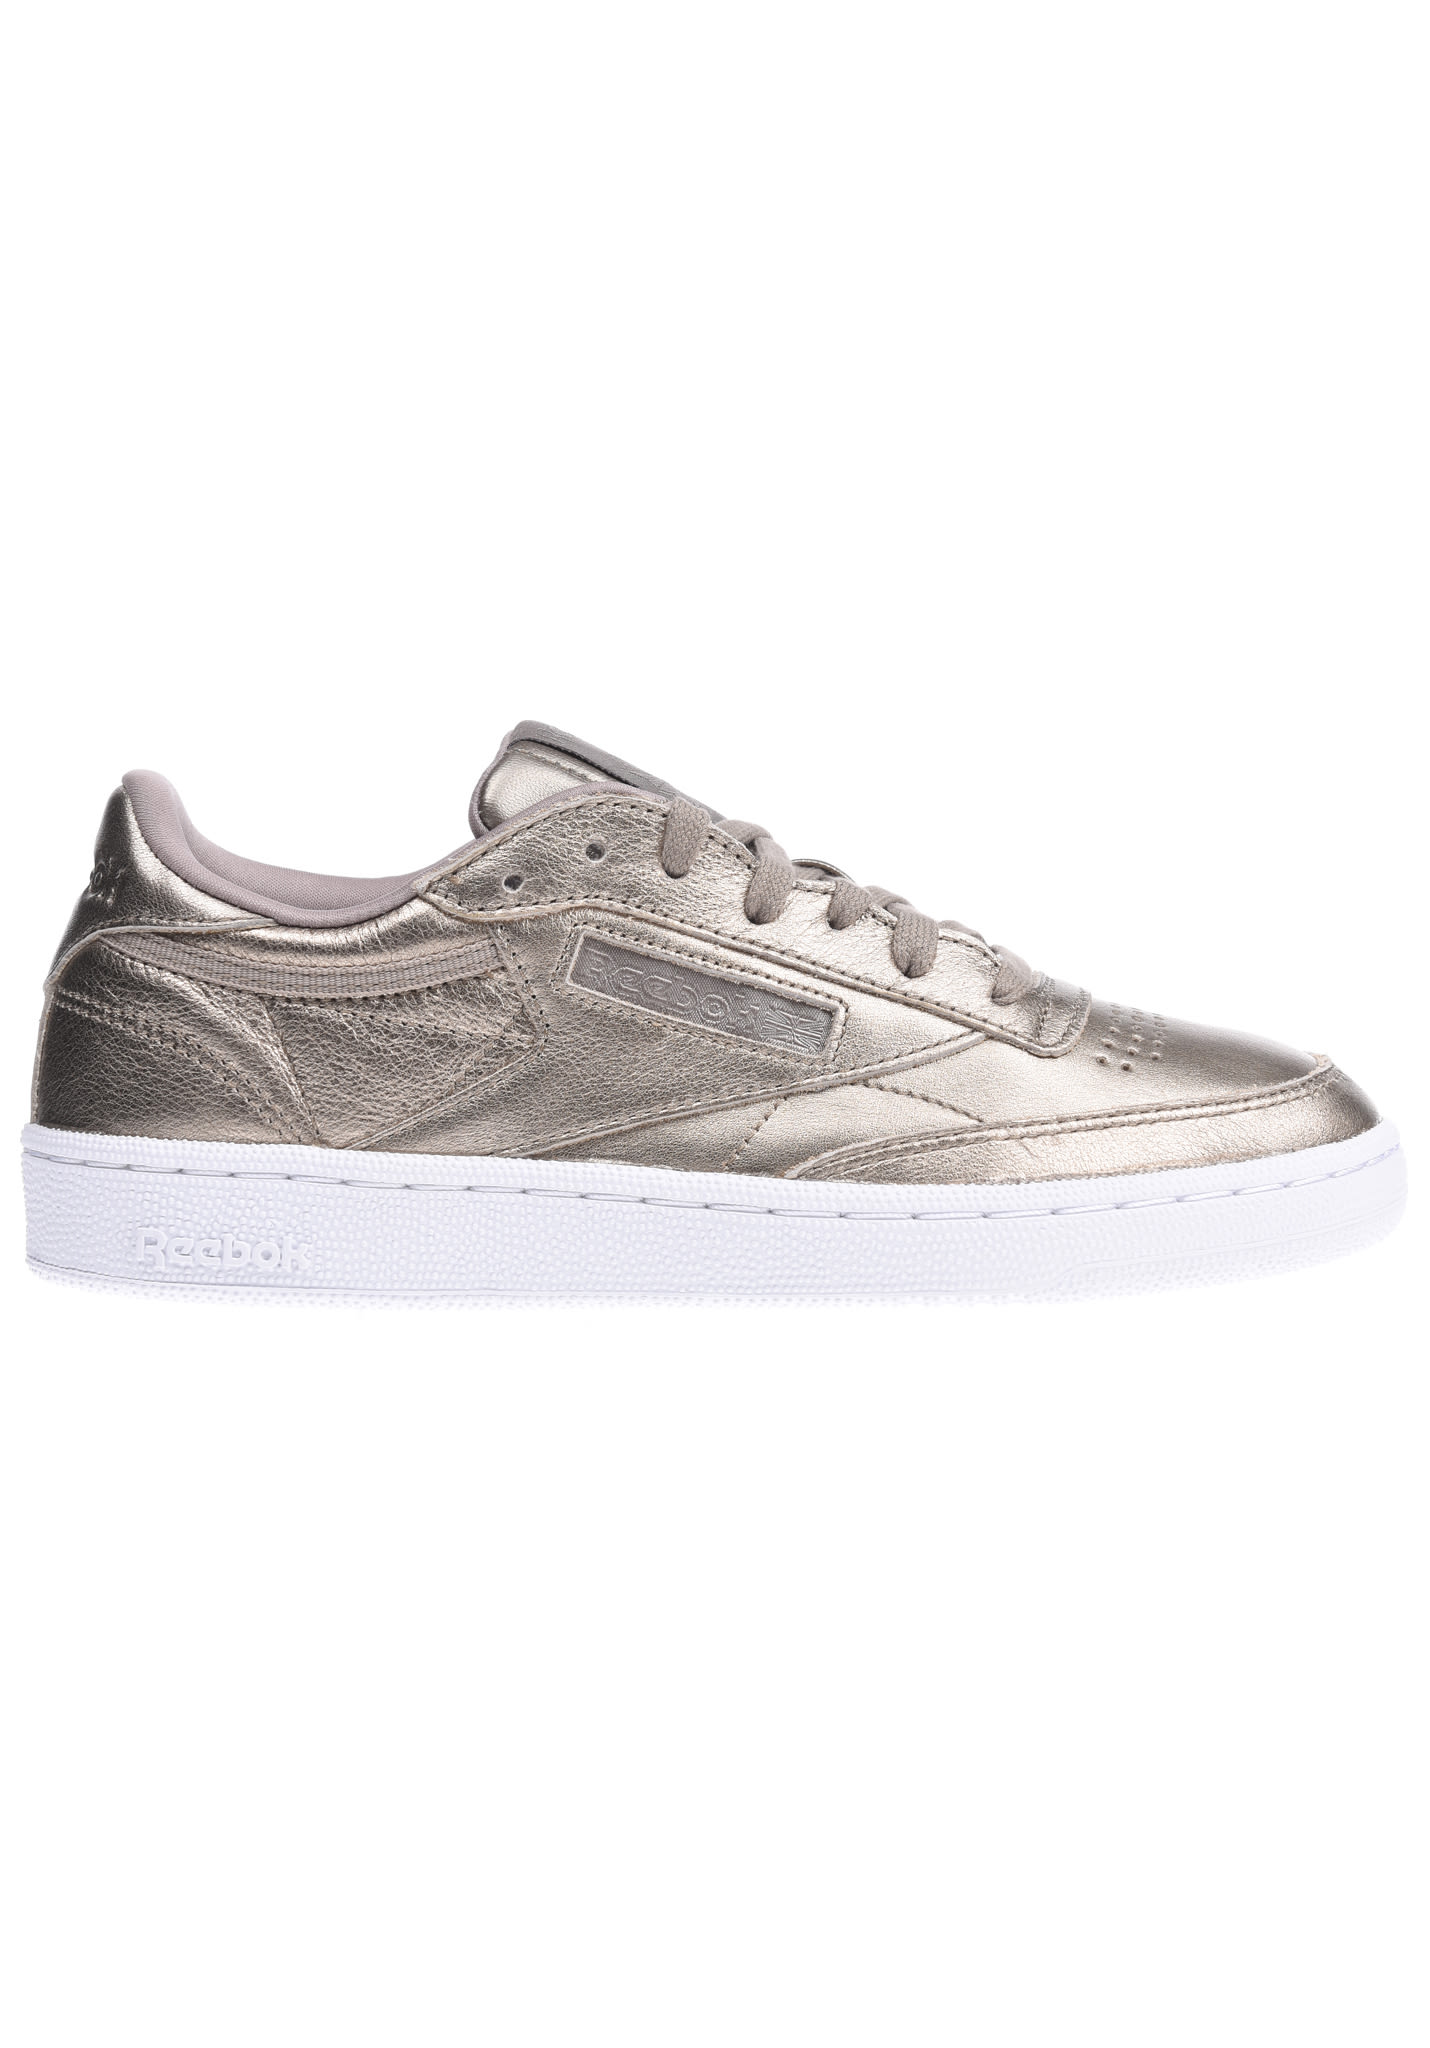 86cb4fdc1f9b1 Reebok Club C 85 Melted Metal - Sneakers for Women - Gold - Planet Sports